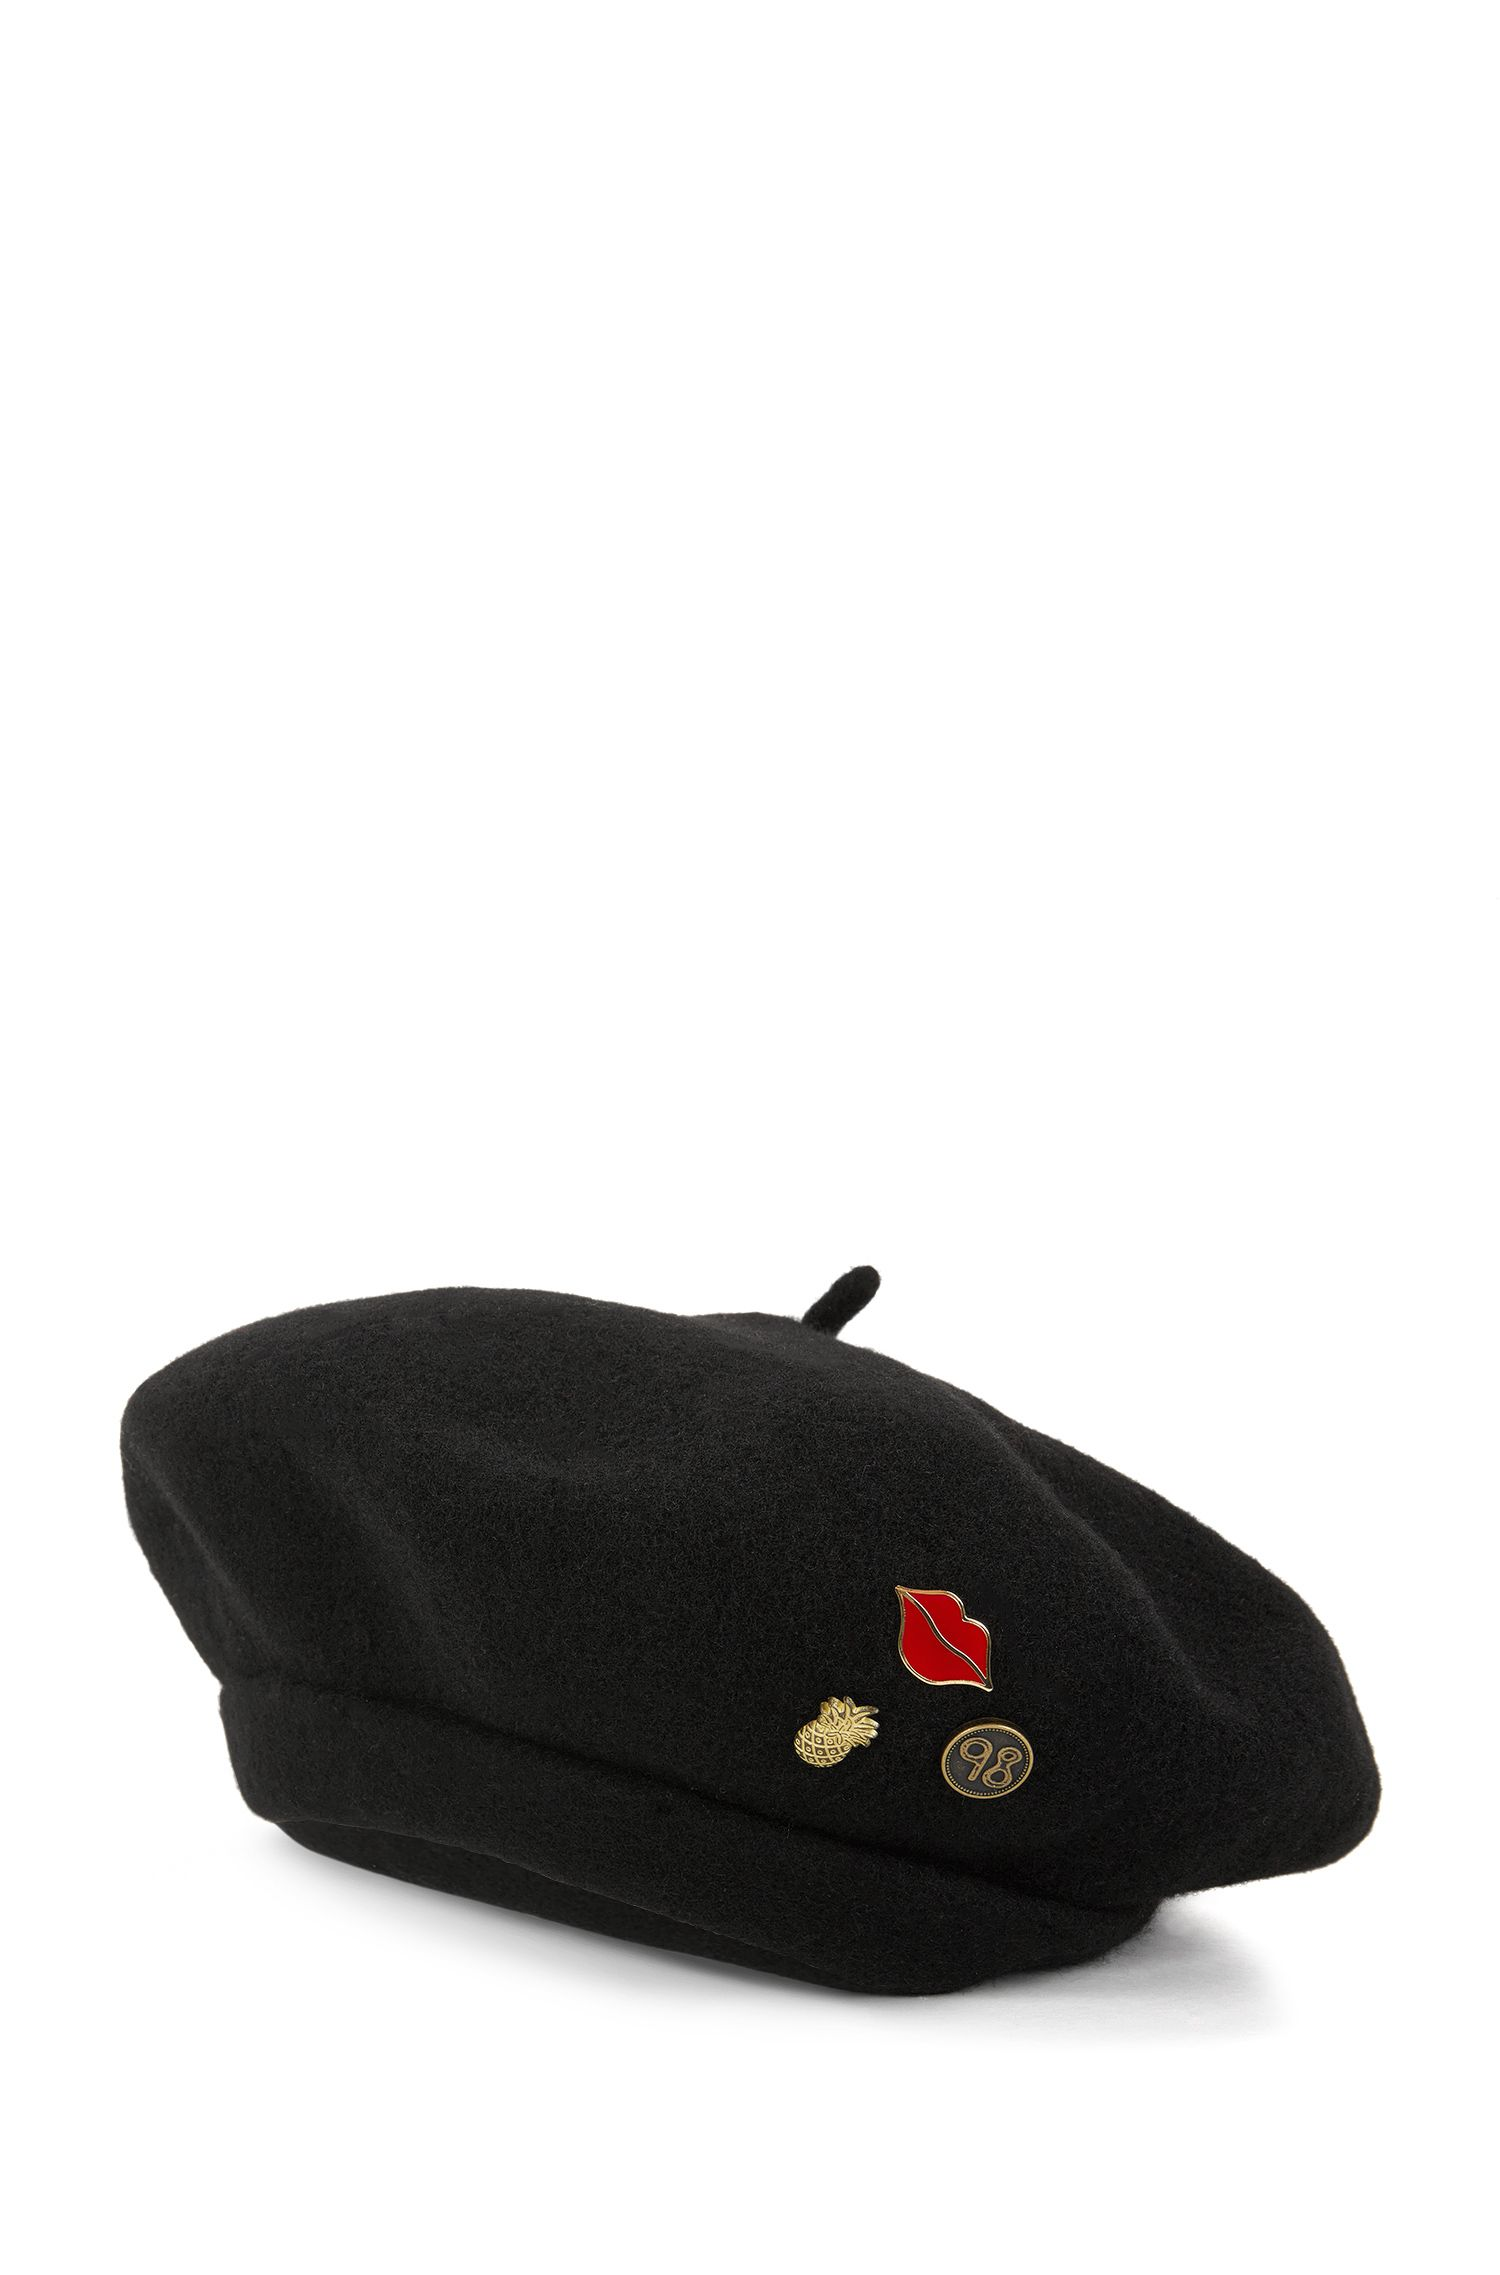 Wool beret with detachable pins